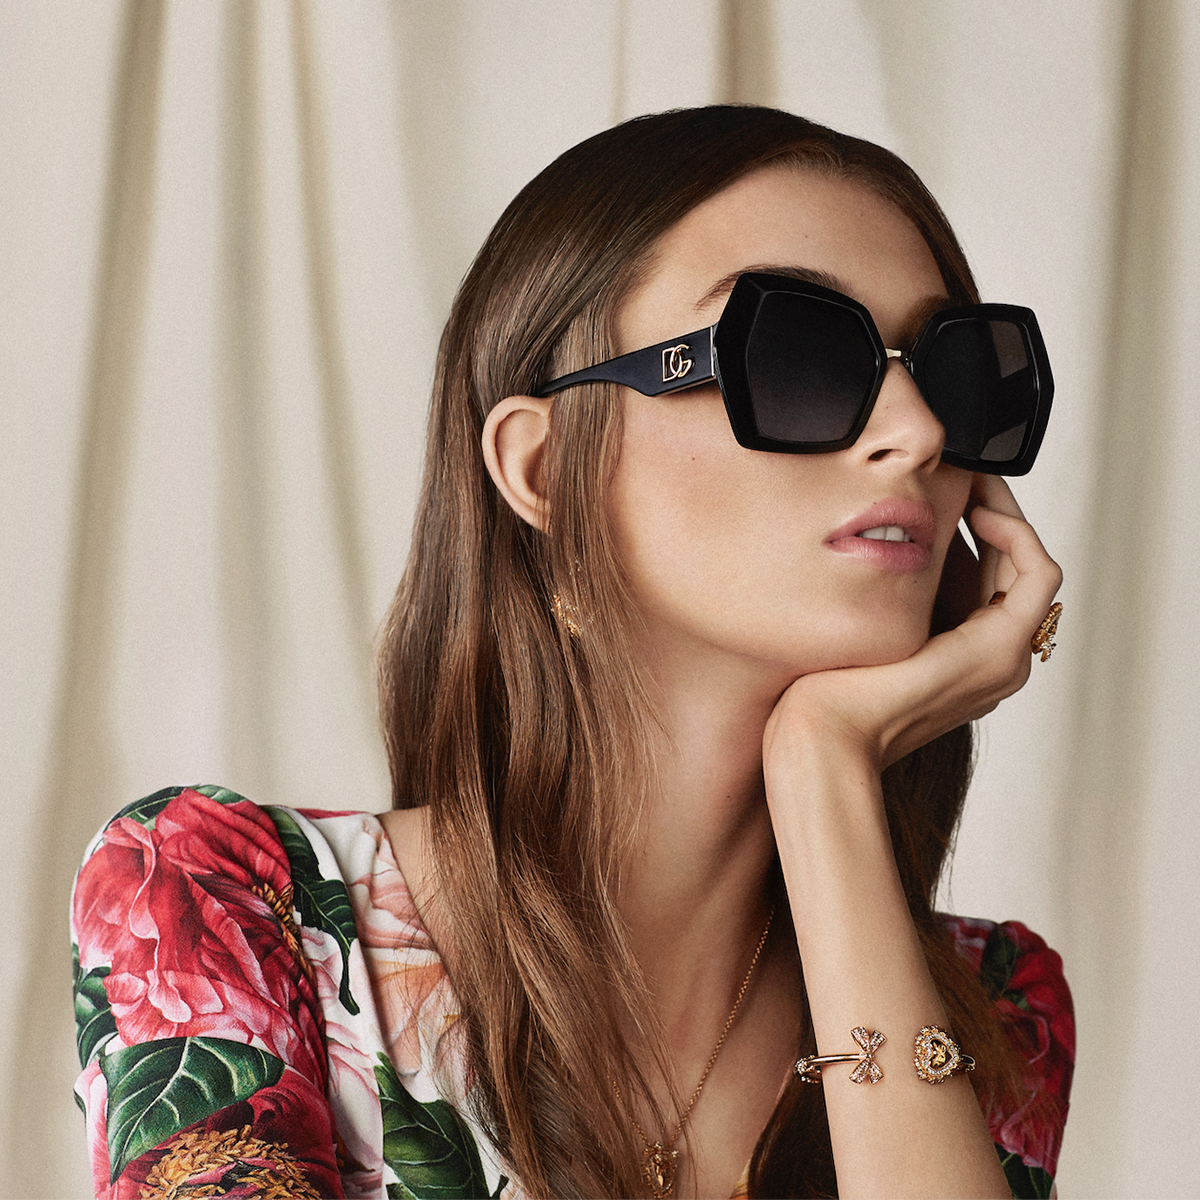 The #DolceGabbana Monogram sunglasses are made up of a black acetate frame and temples with gold metal details.  Discover the #DGEyewear at the link: